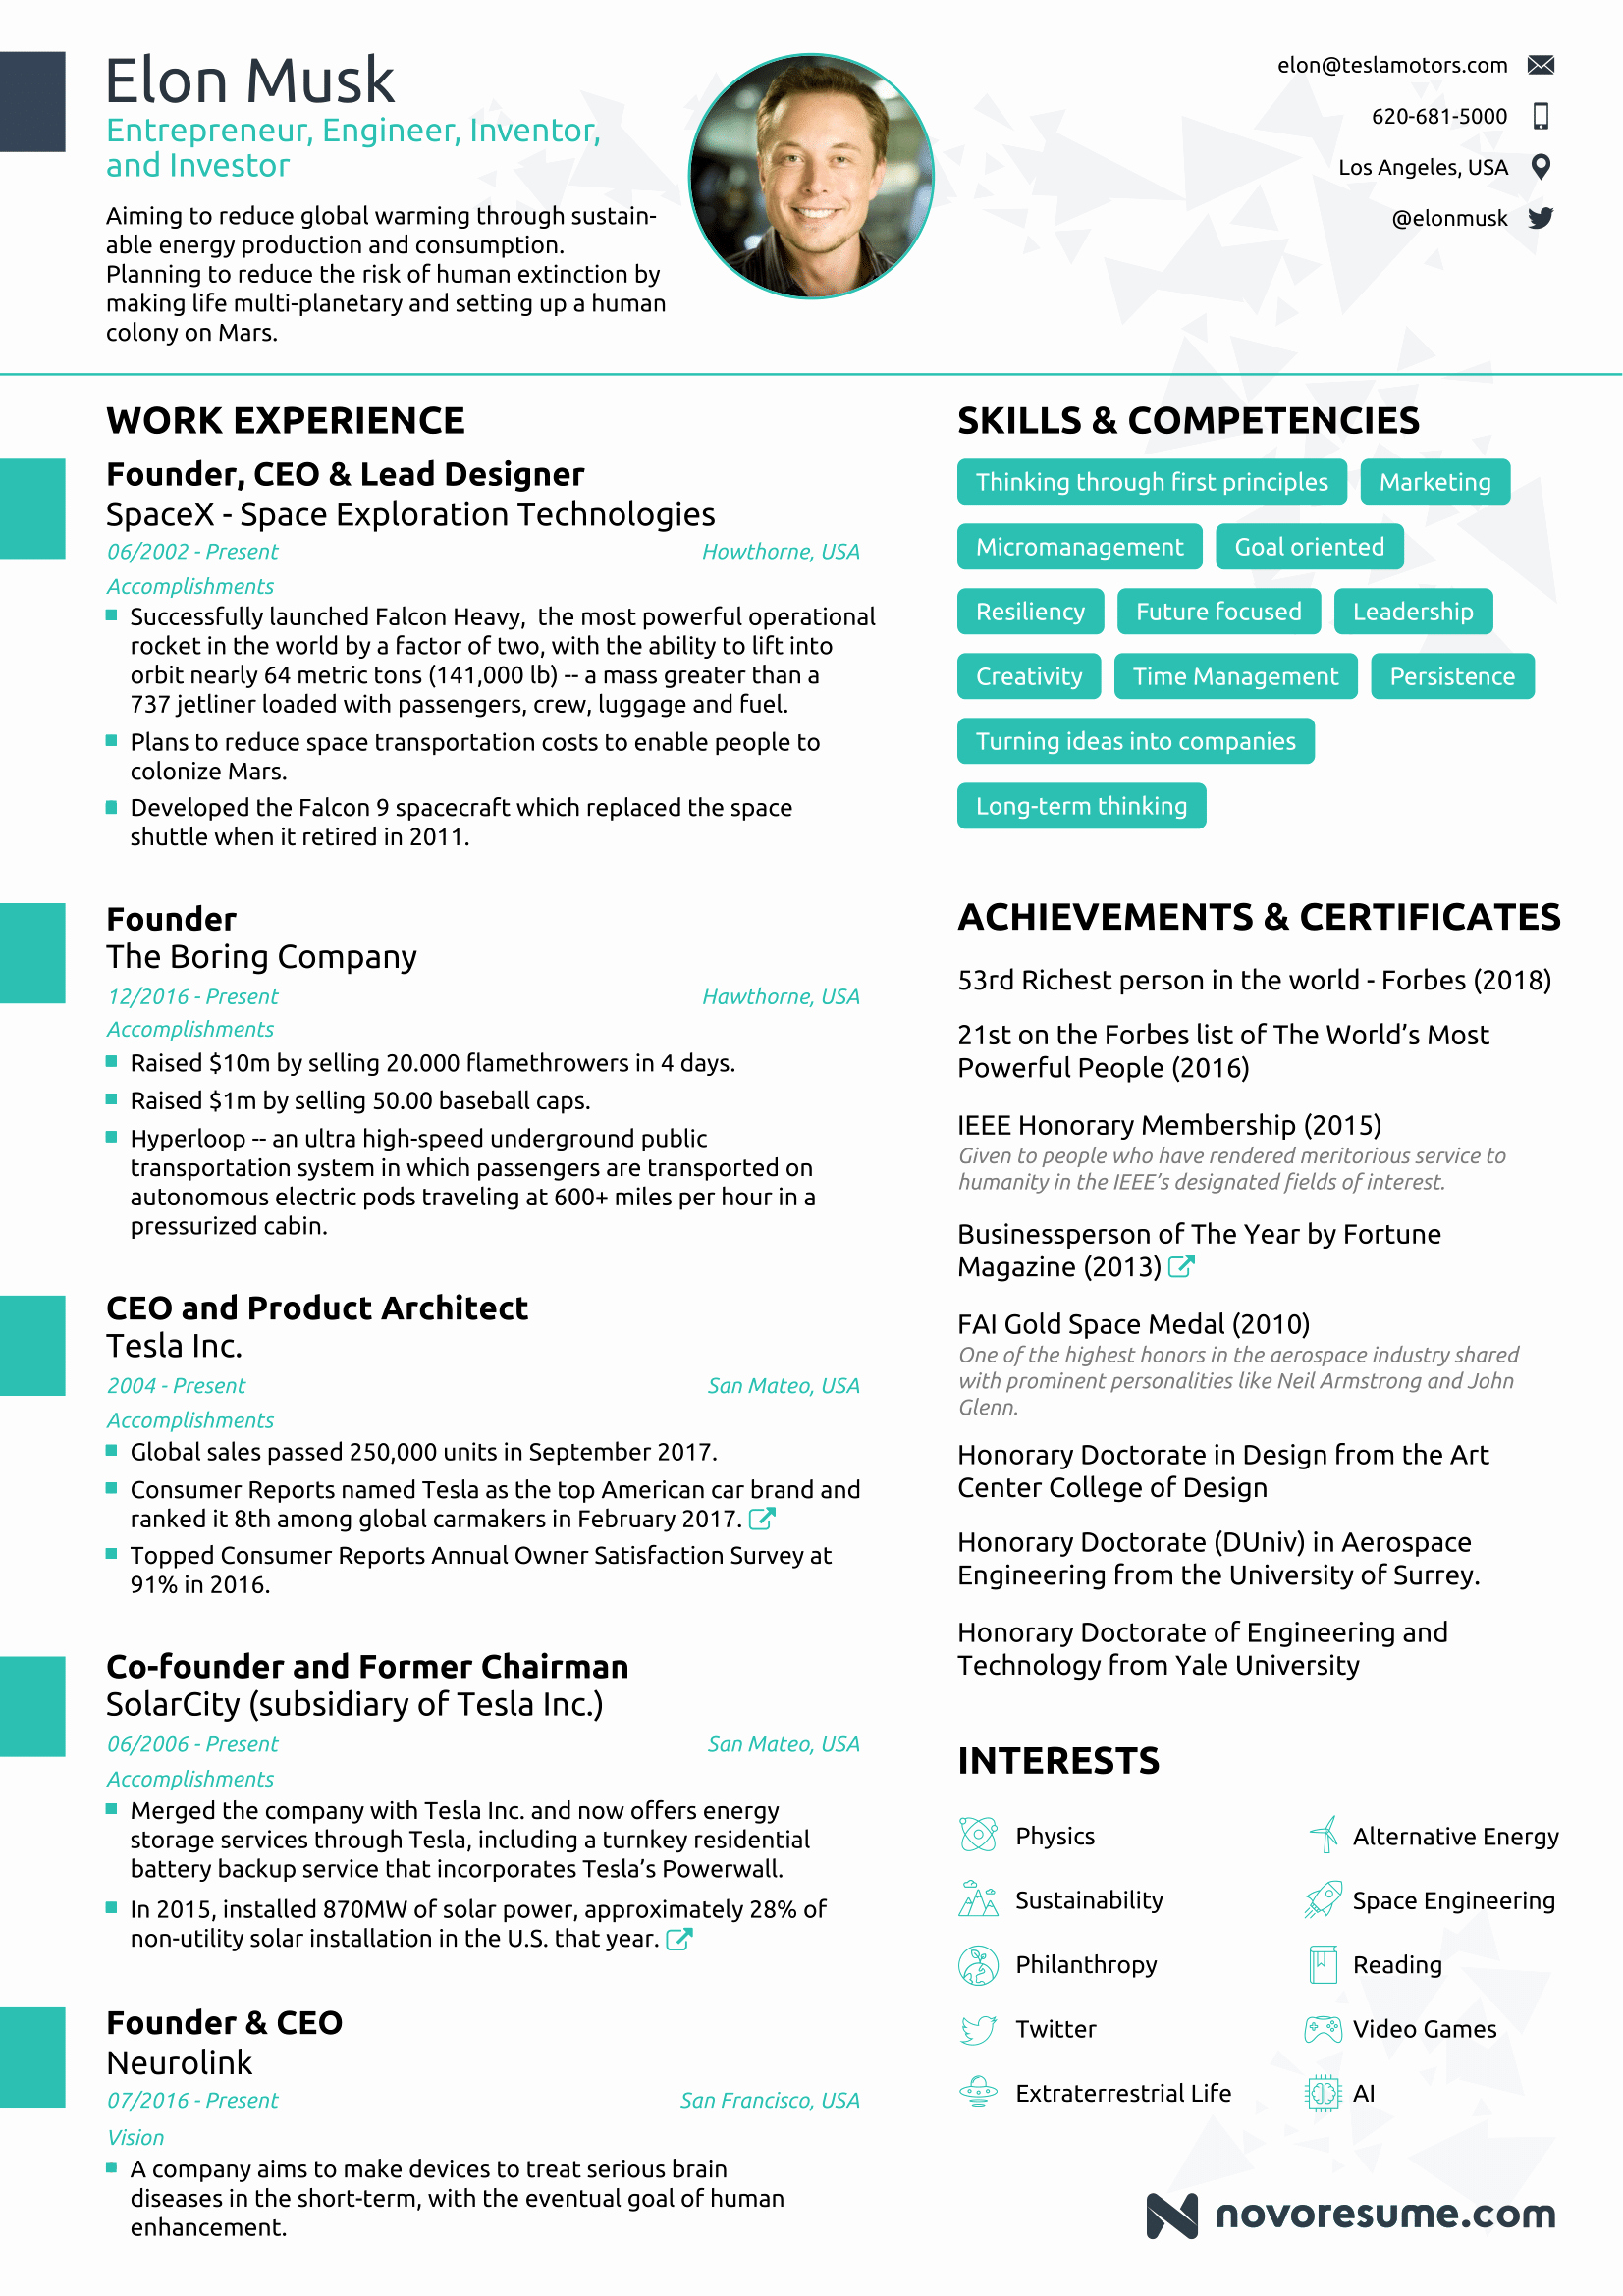 1 Page Resume Template Best Of the Résumé Of Elon Musk by Novorésumé